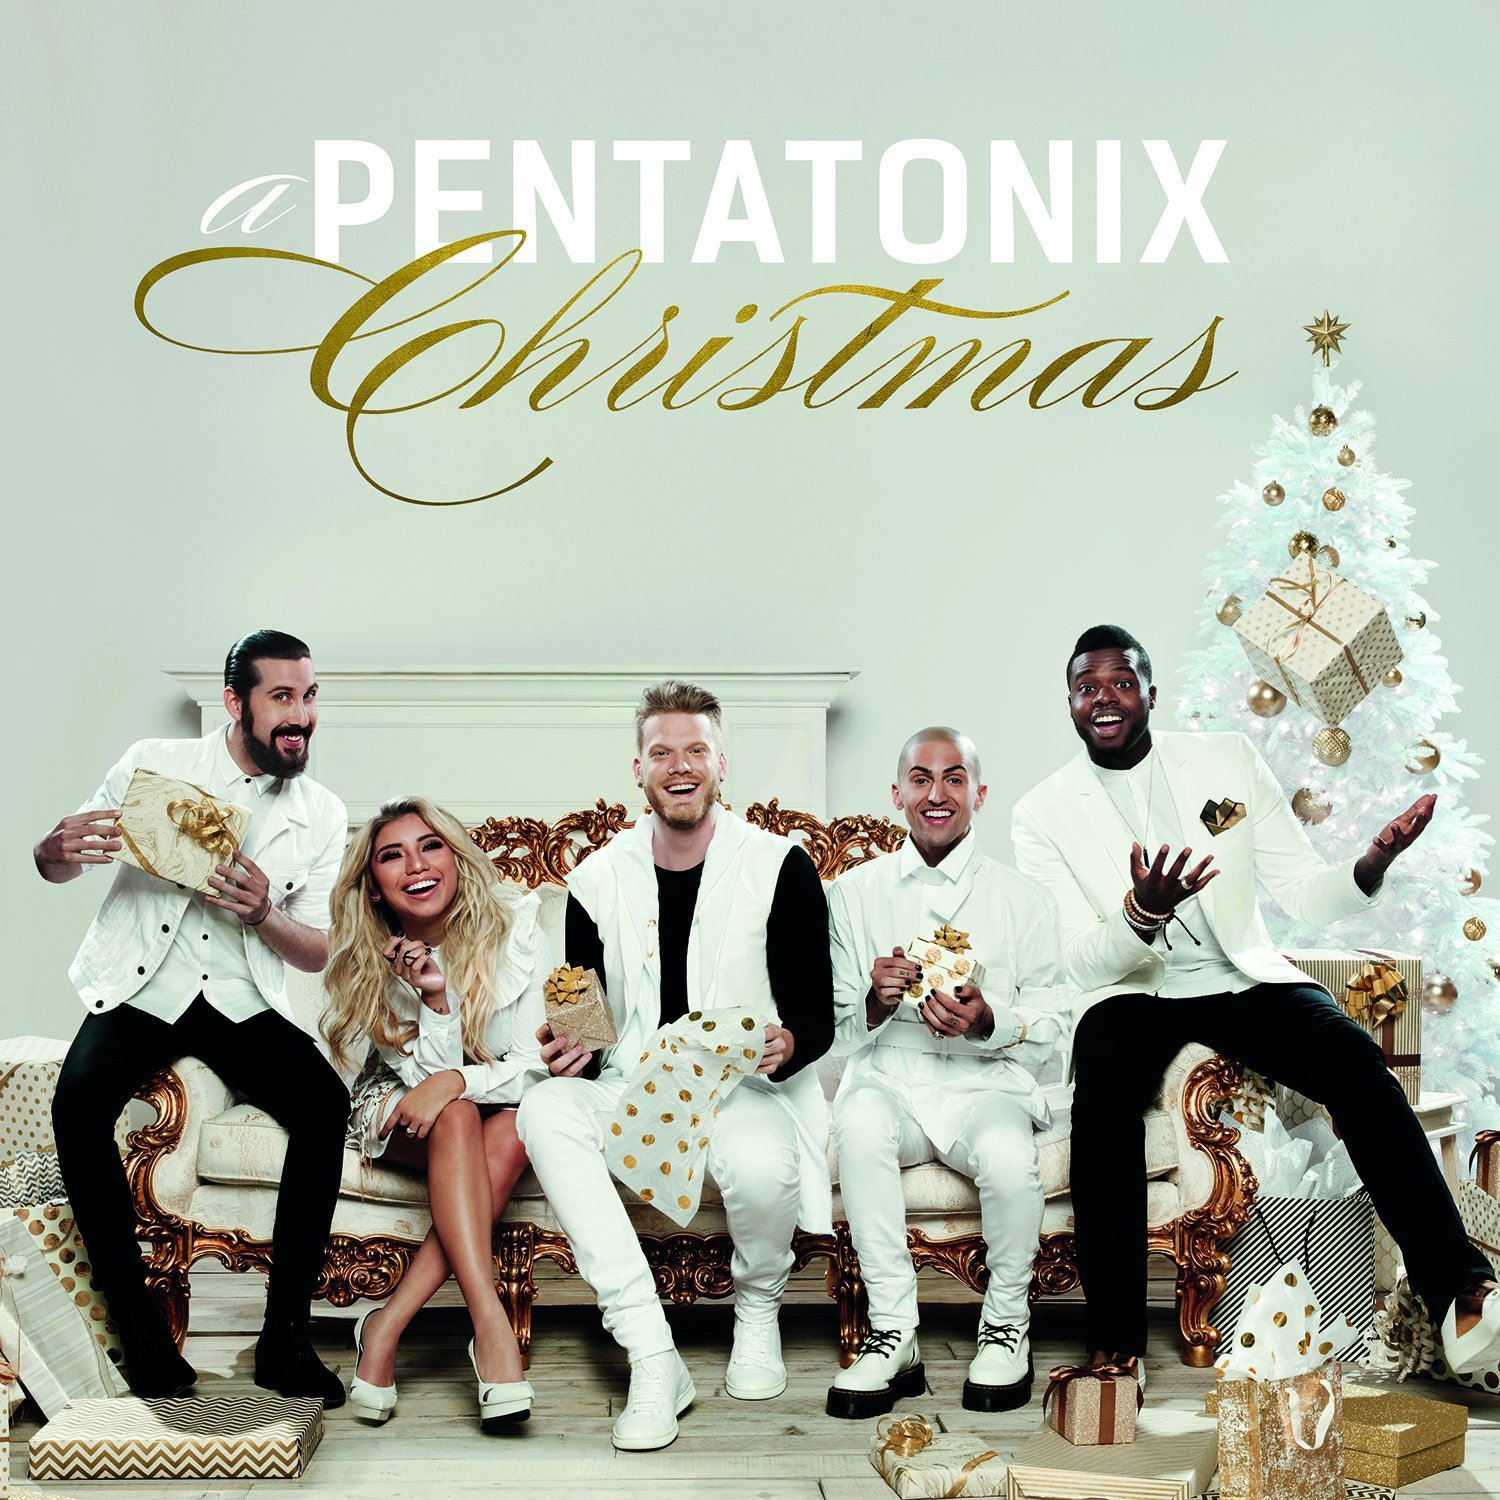 Pentatonix Christmas Songs.A Pentatonix Christmas